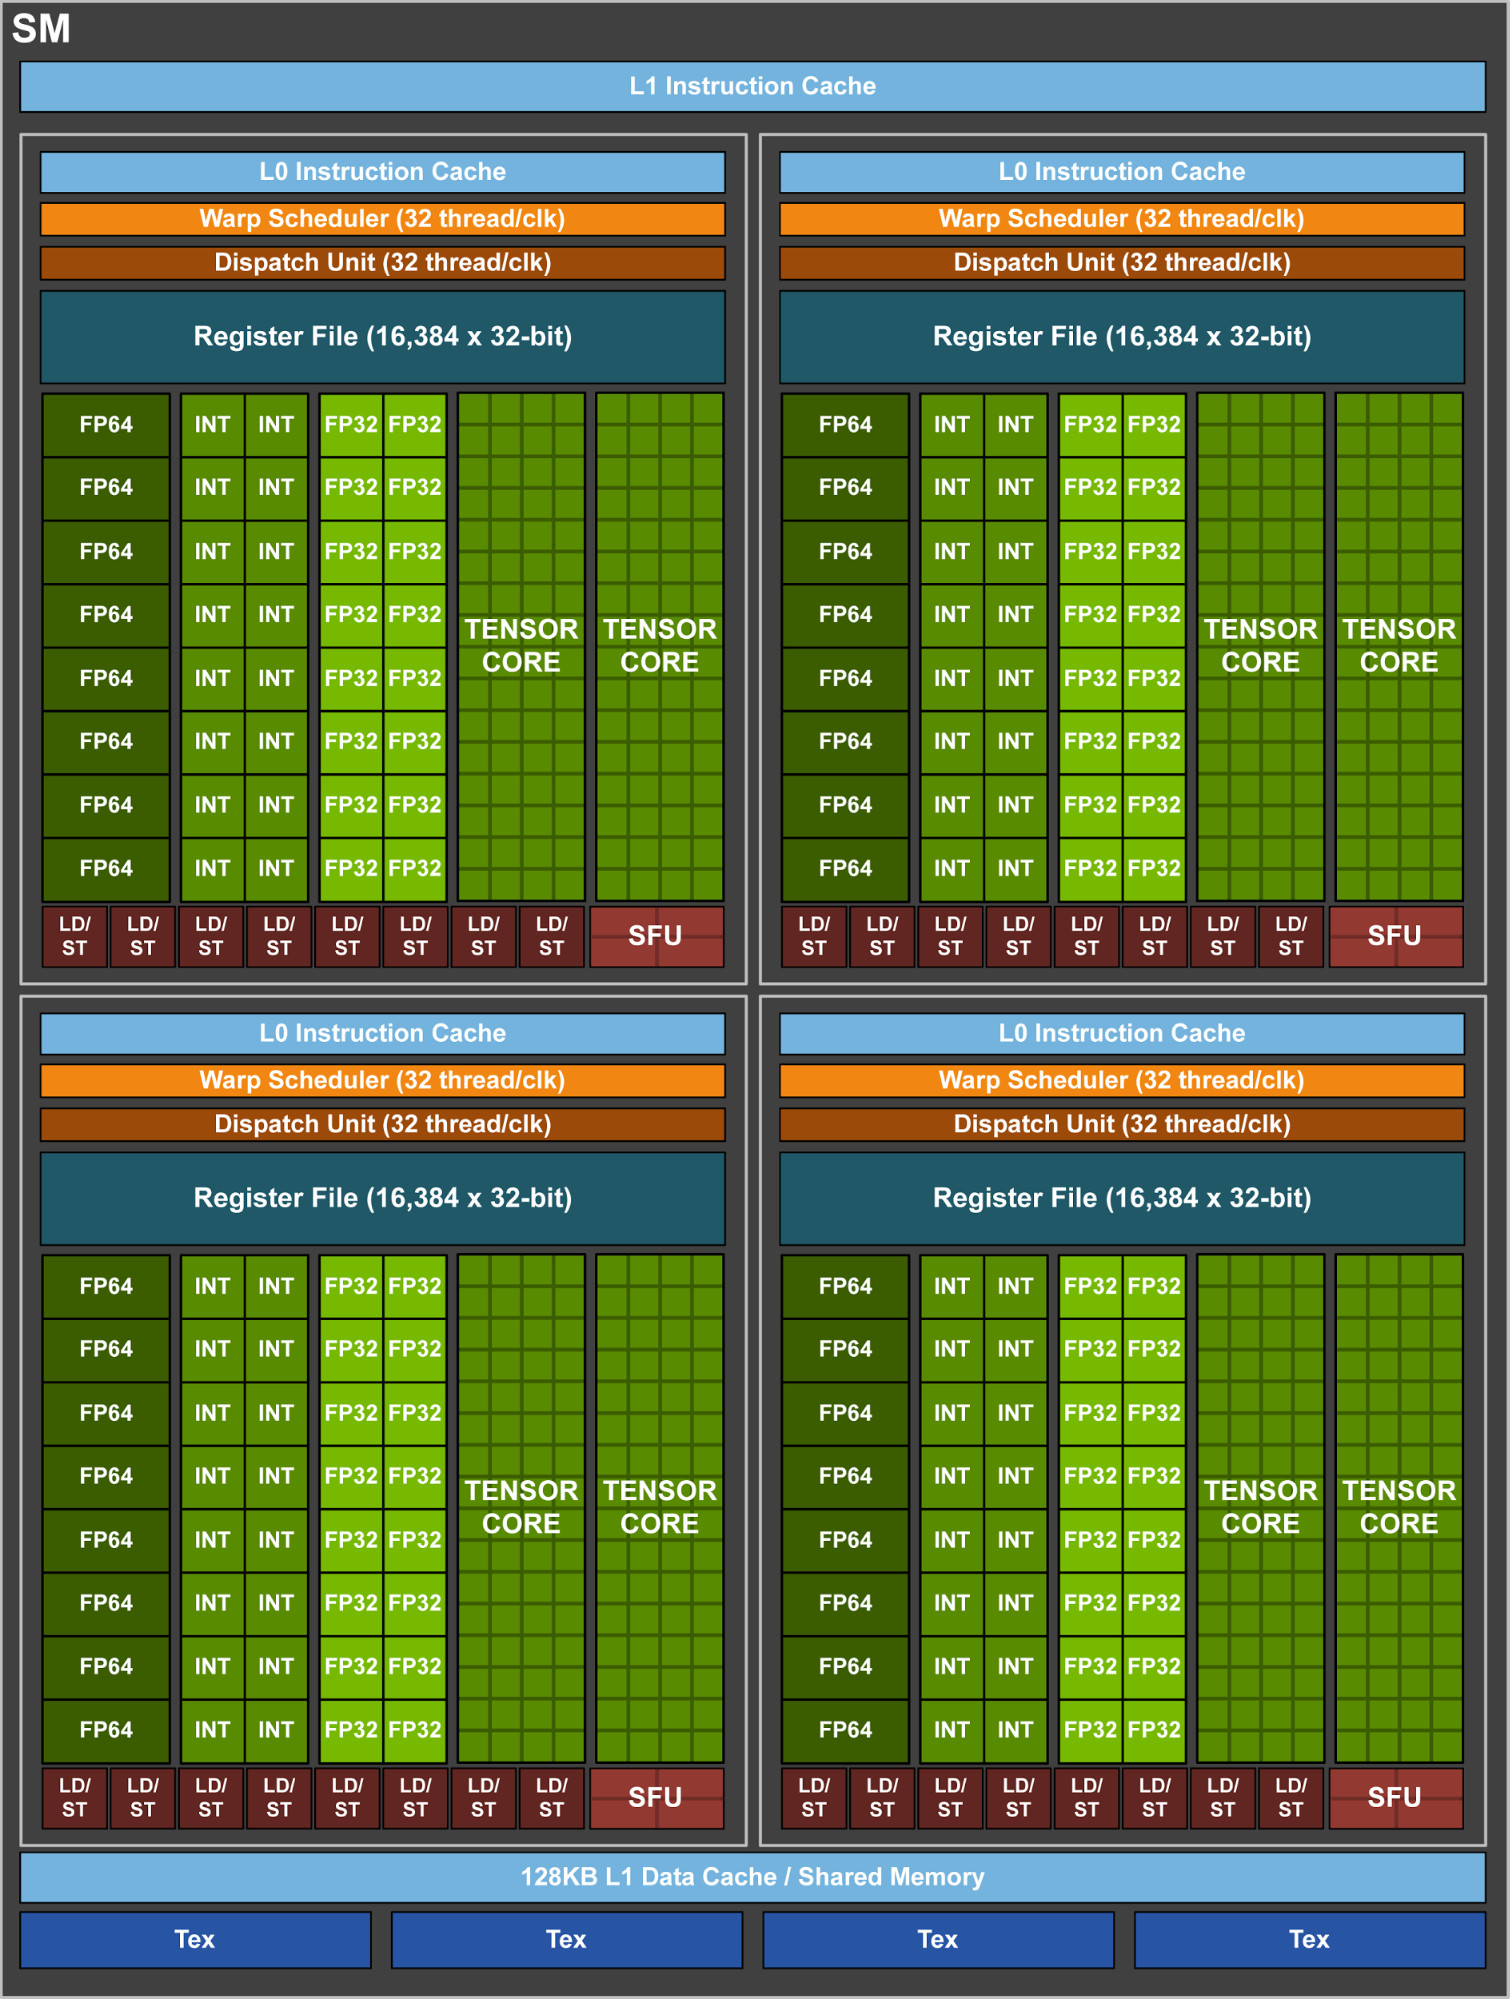 Nvidia Gv100 Silicon Detailed Techpowerup Forums Block Diagram On Hard Disk Additionally Intel Z77 Chipset The Tesla V100 Is Advertised To Offer 50 Higher Fp32 And Fp64 Peak Performance Over Pascal Based P100 Its Throughput Rated At 15